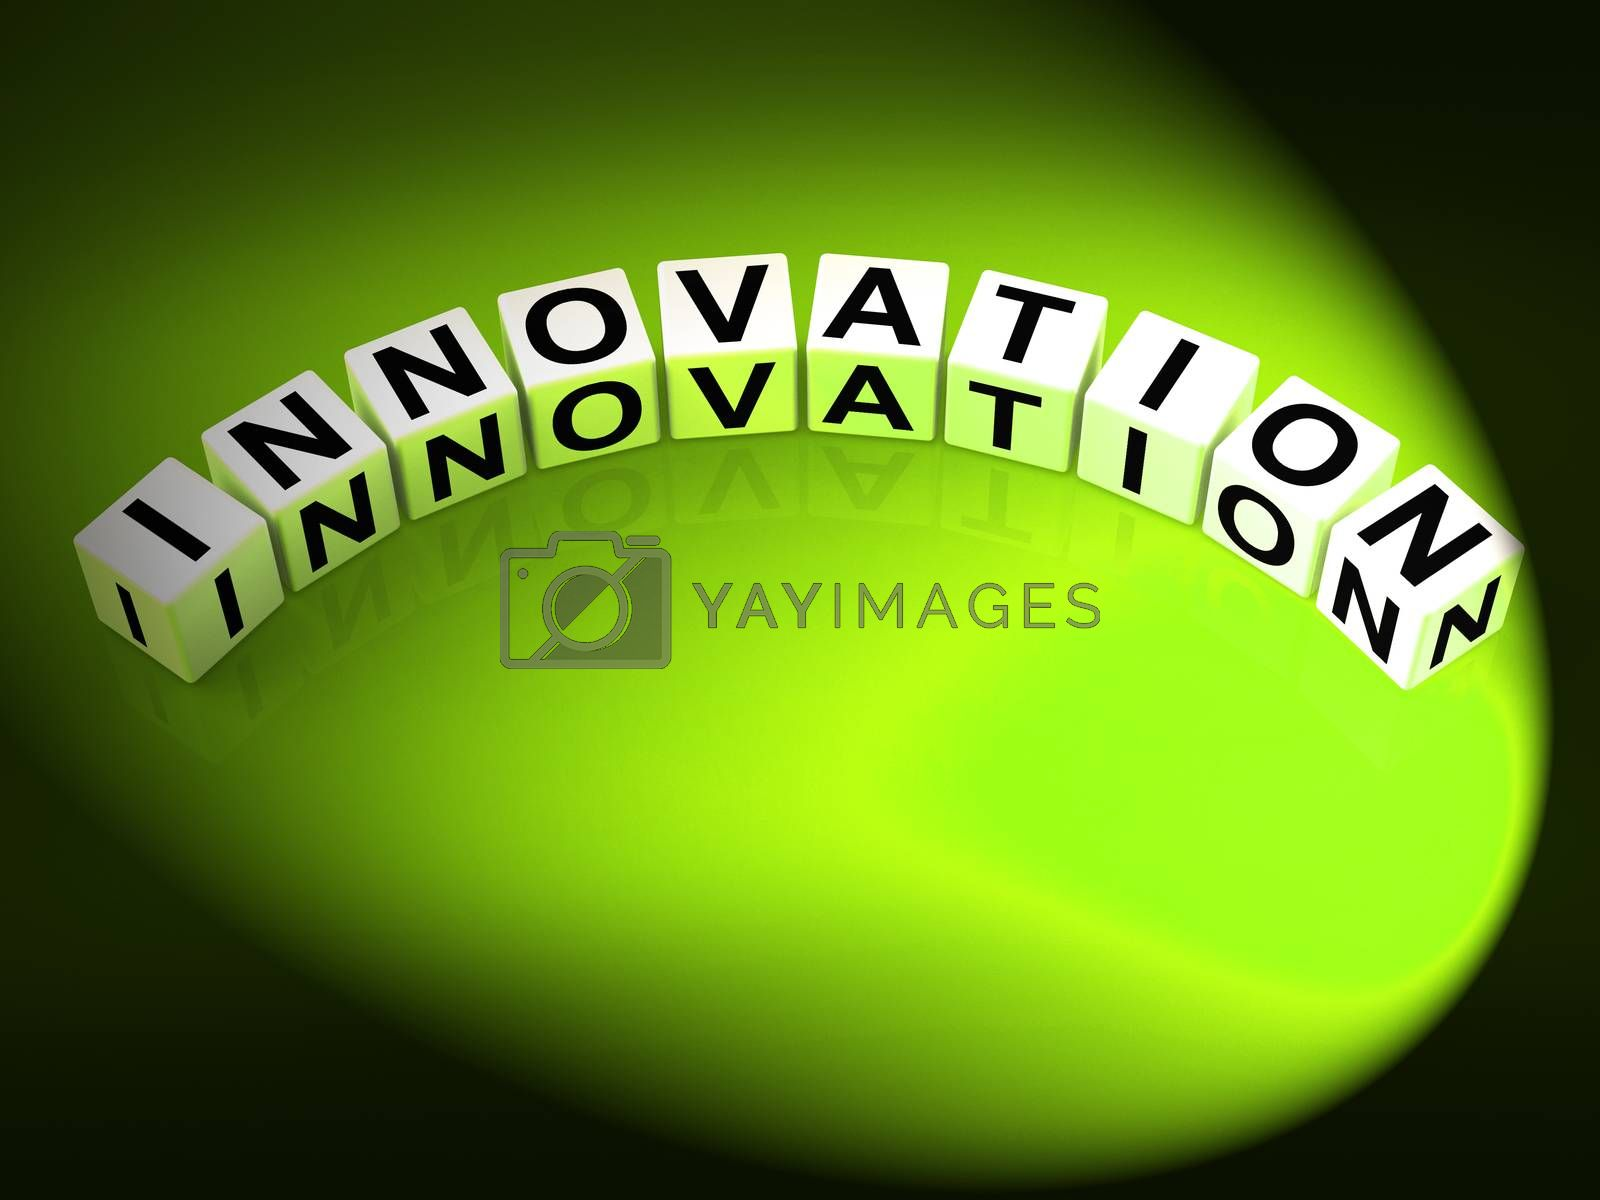 Innovation Letters Mean Improvements And New Developments by stuartmiles